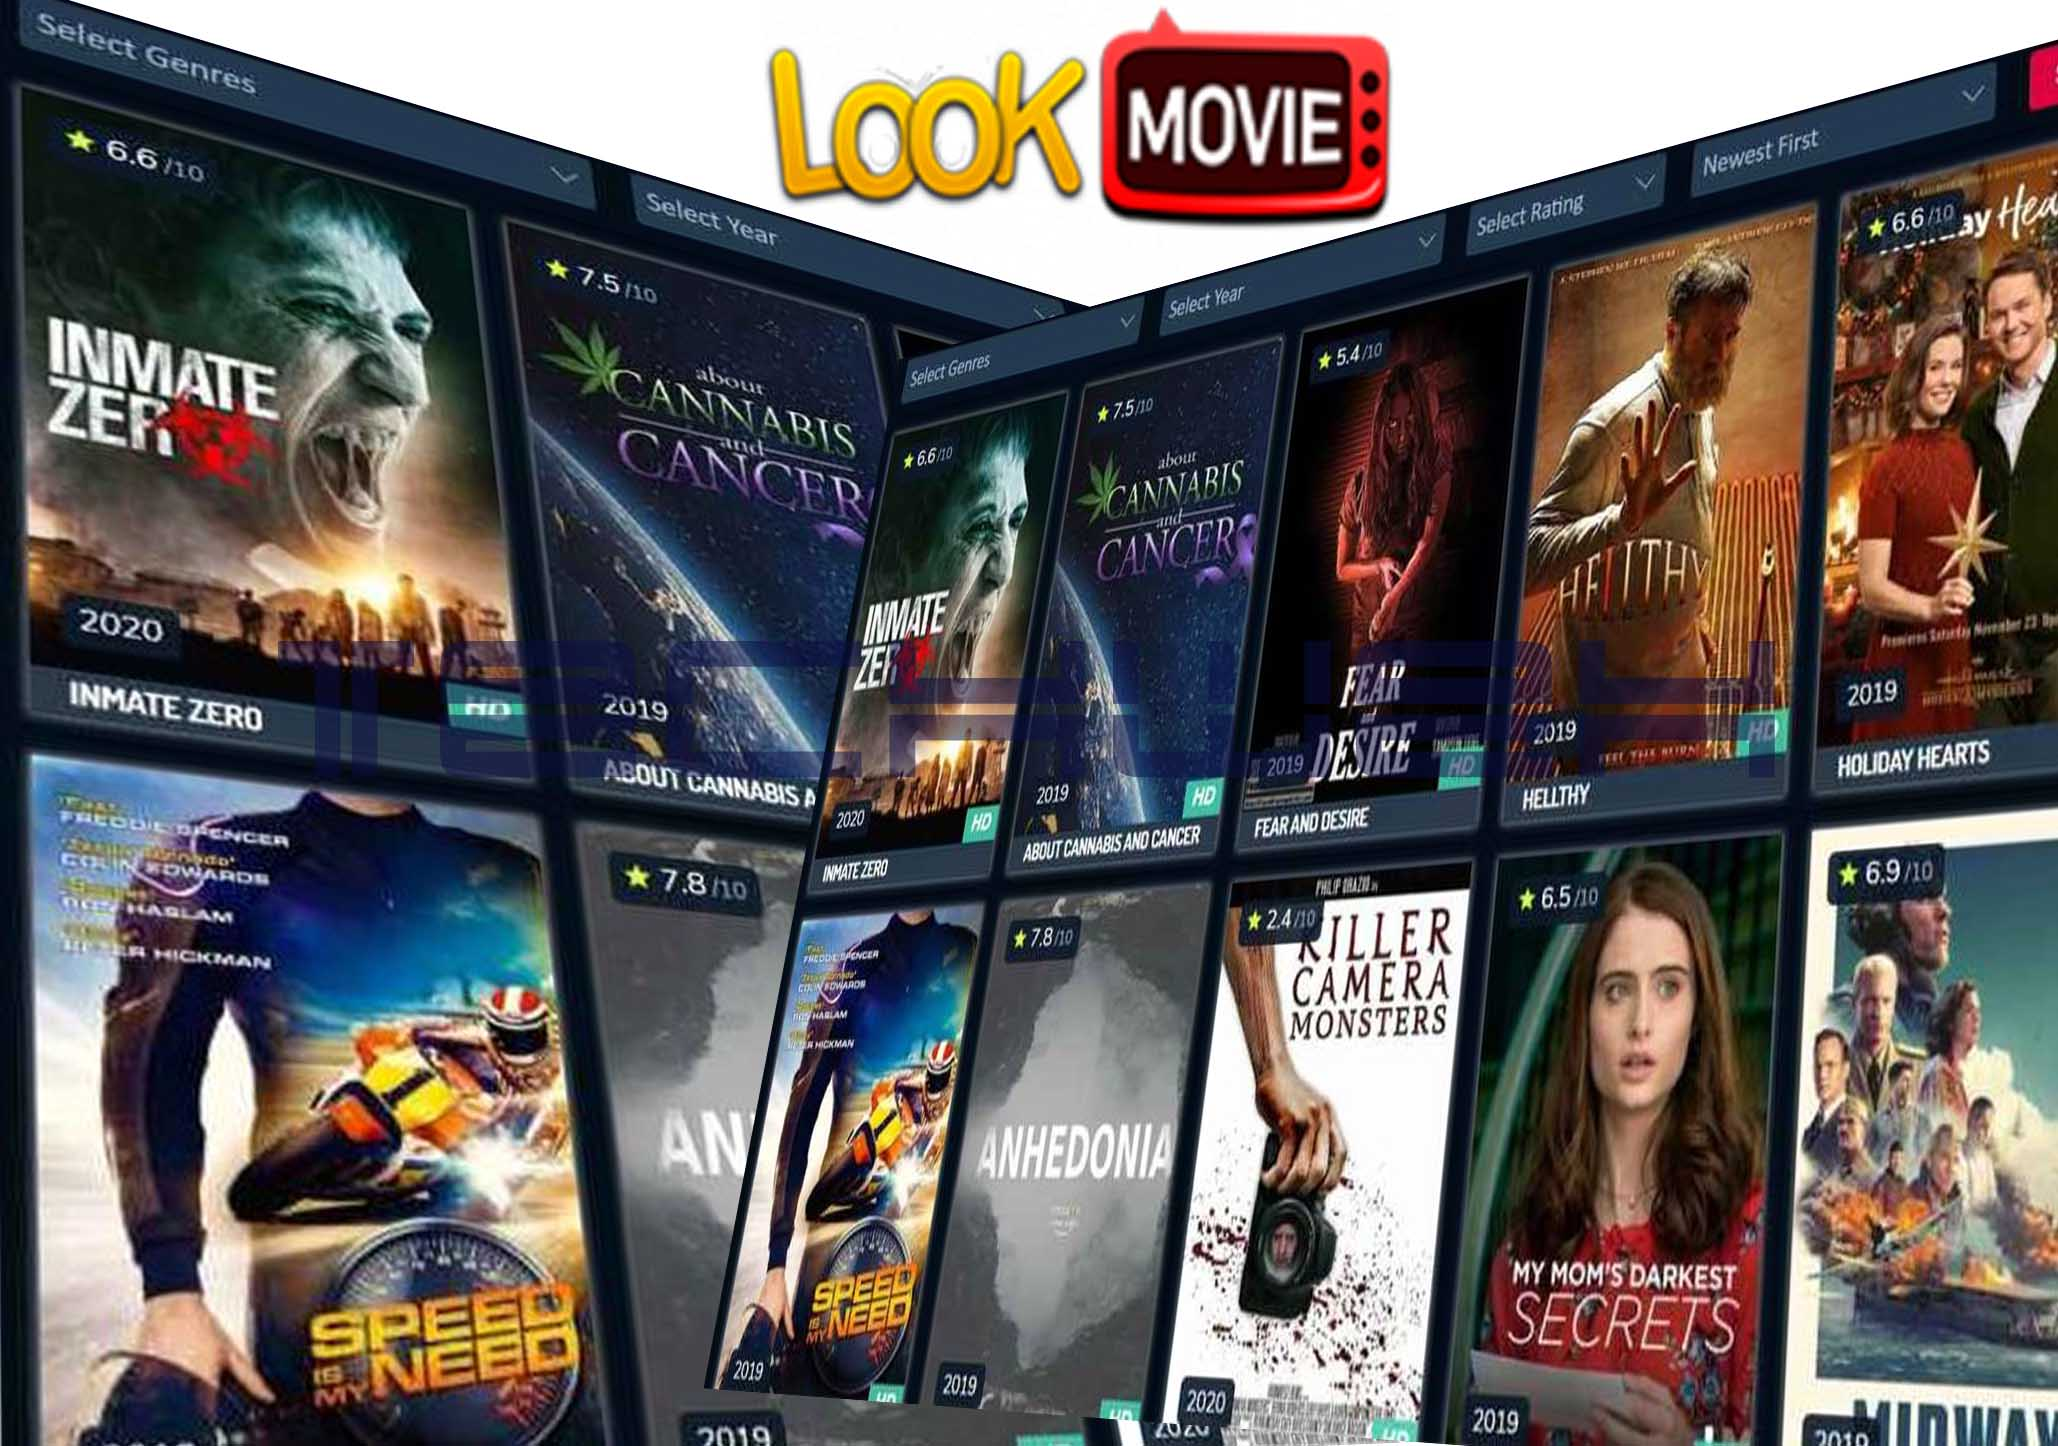 Lookmovie - Is it Safe to Watch Latest Movies and Shows Free on Lookmovie.io